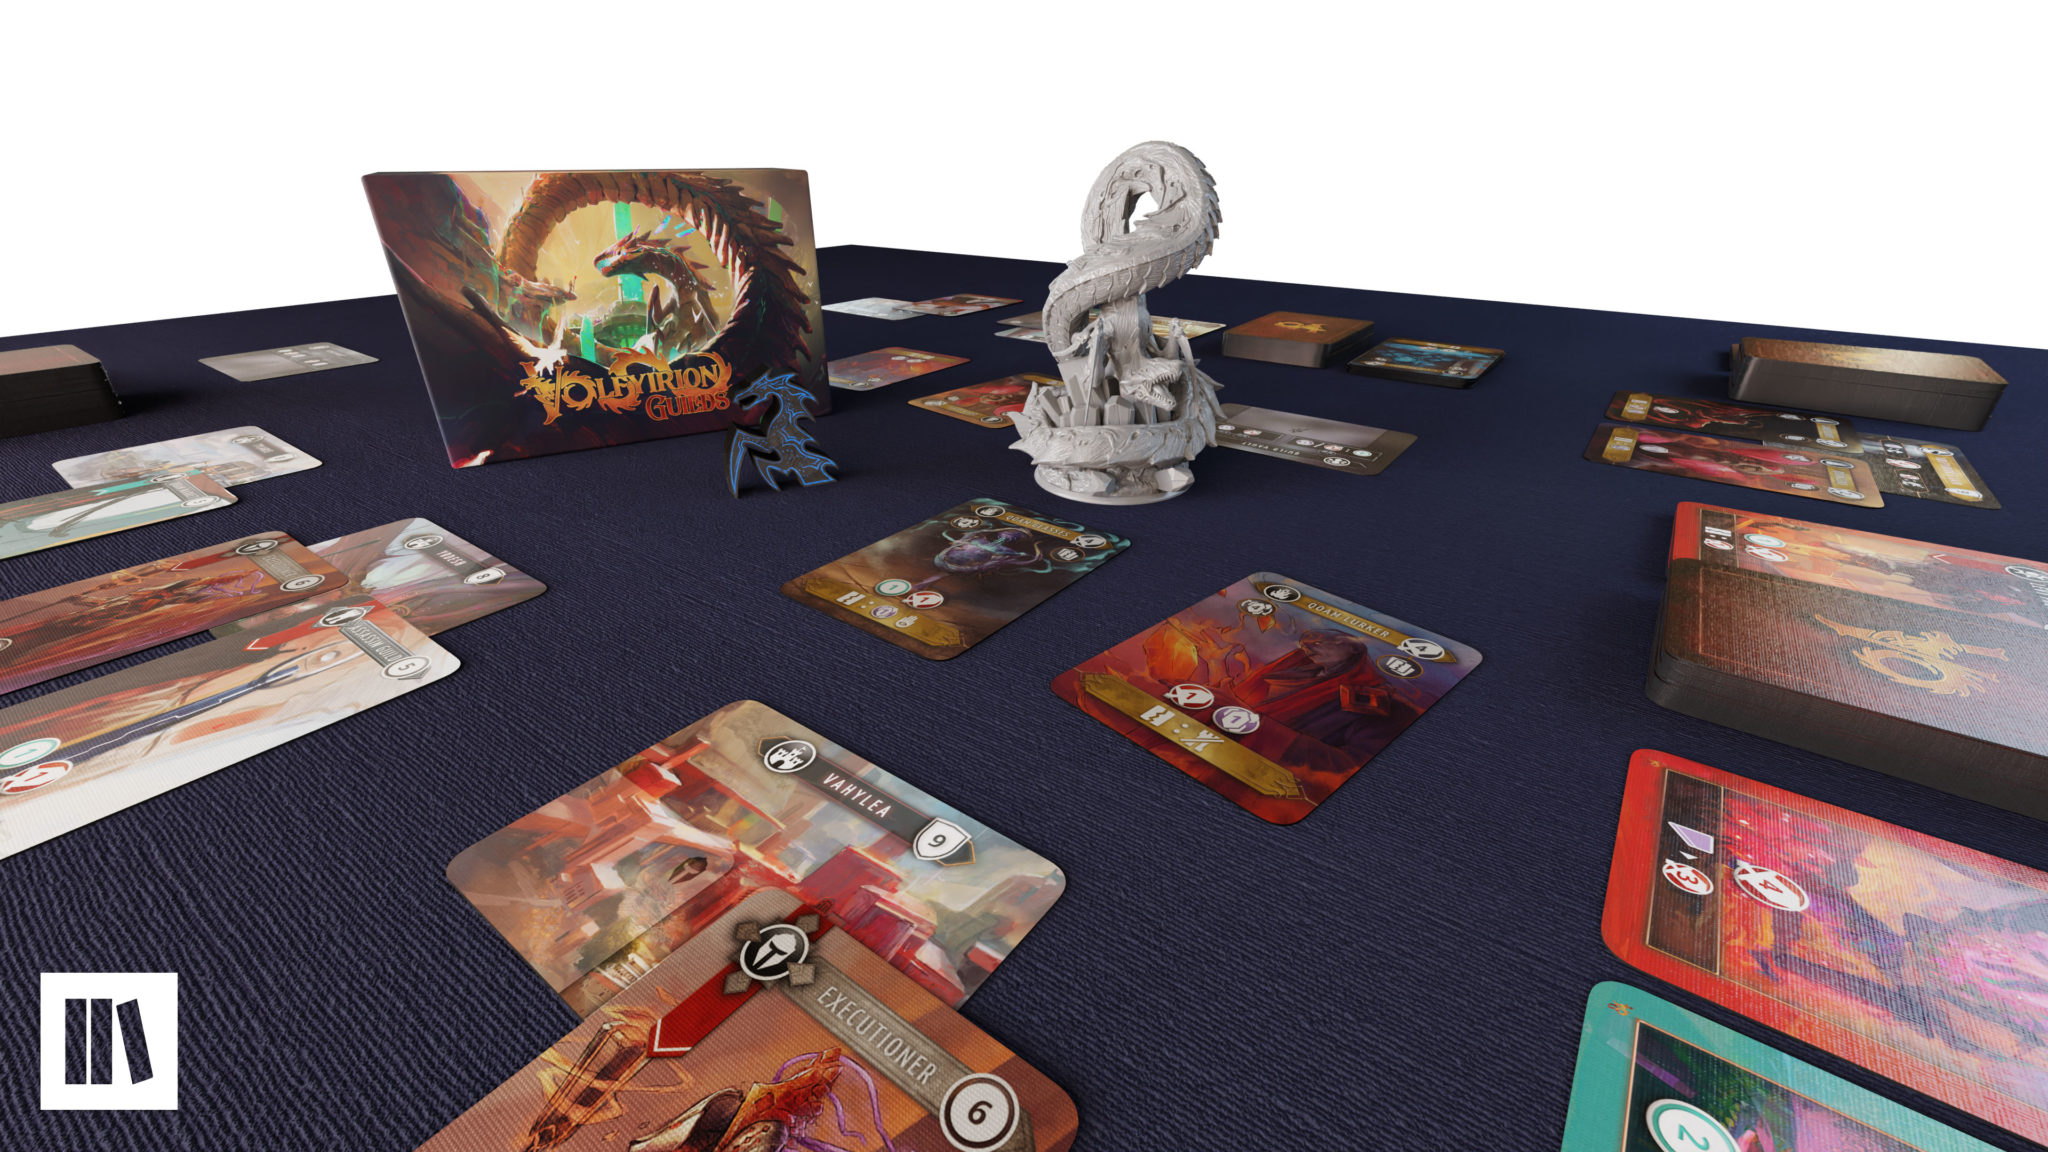 Volfyirion Guilds on  the table